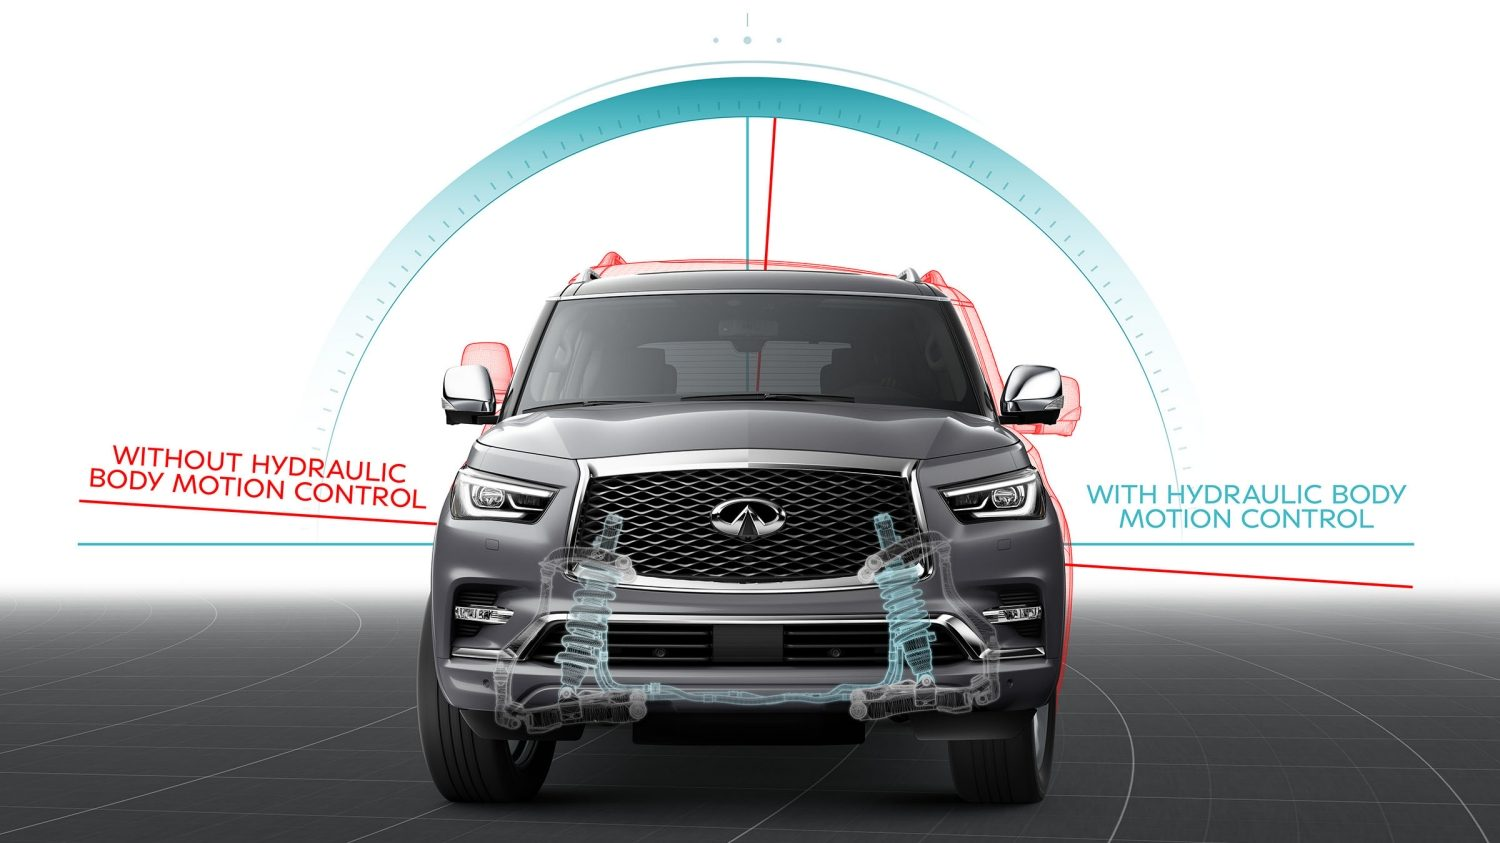 2018 INFINITI QX80 SUV Performance  | Hydraulic Body Motion Overview